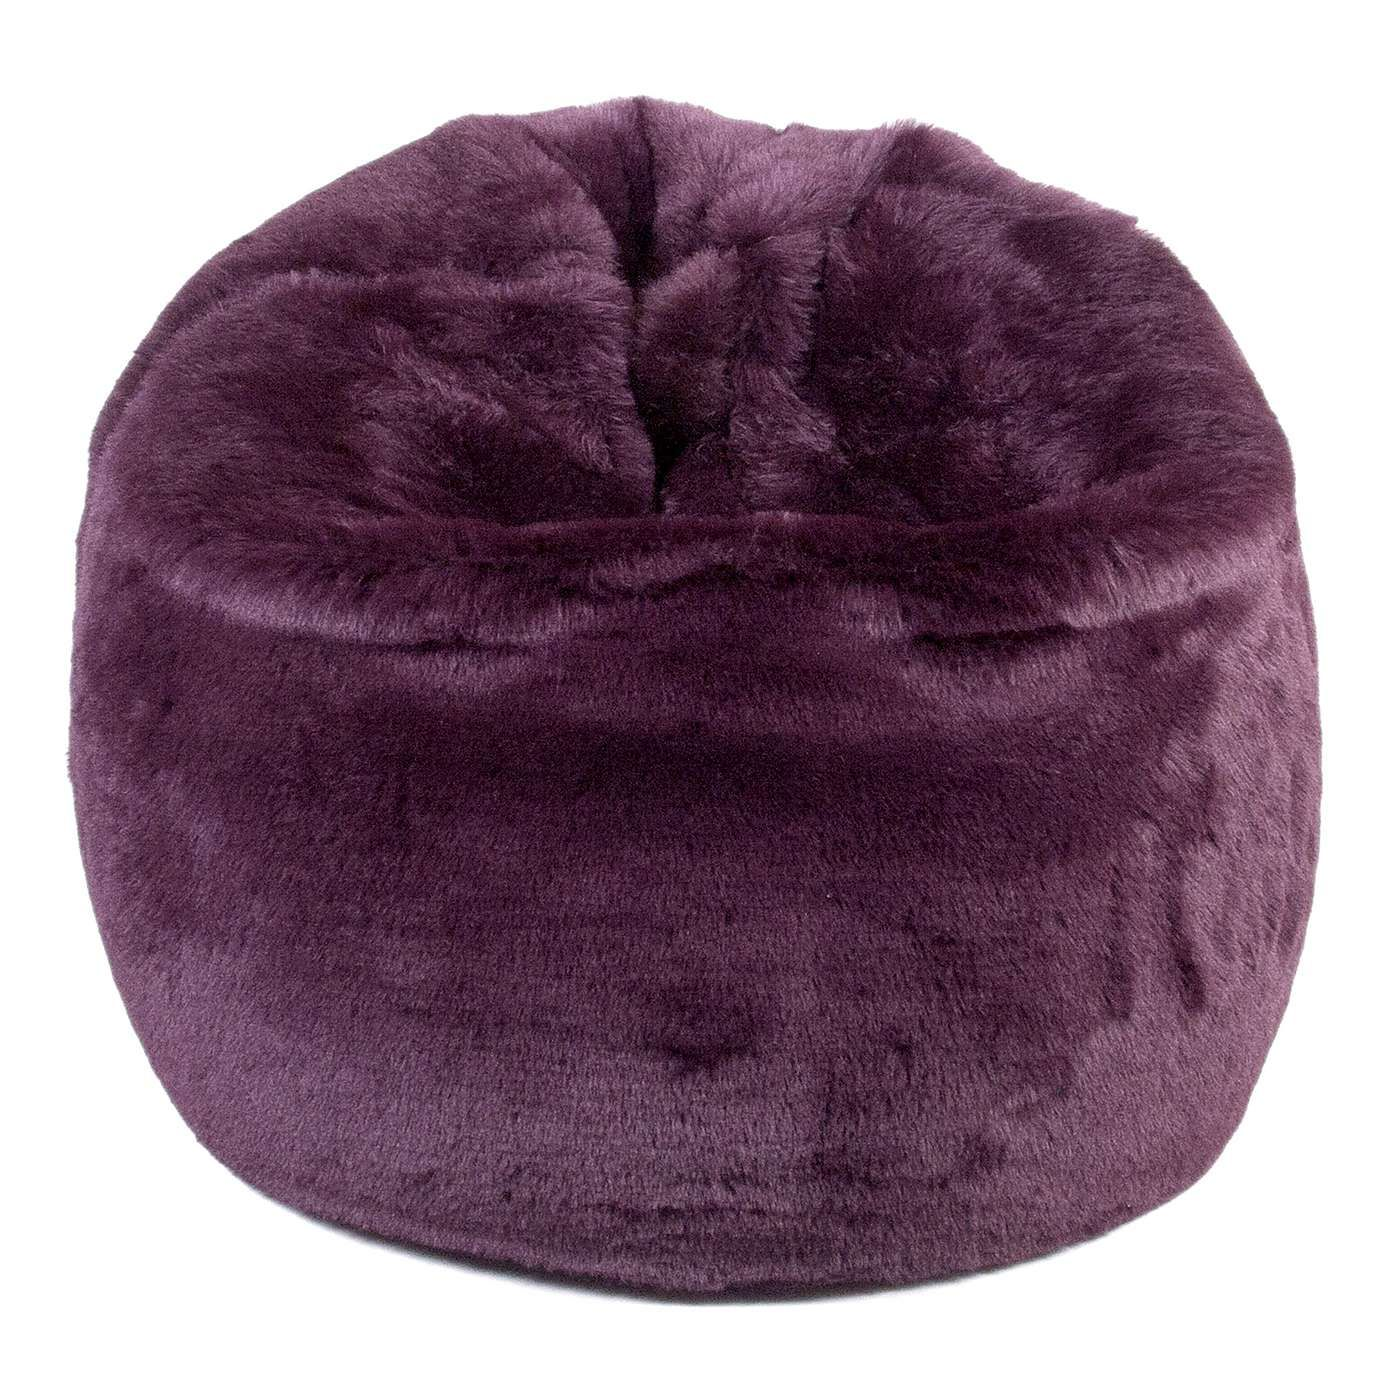 Fine Chinchilla Faux Fur Bean Bag Pickle Faux Fur Bean Bag Inzonedesignstudio Interior Chair Design Inzonedesignstudiocom